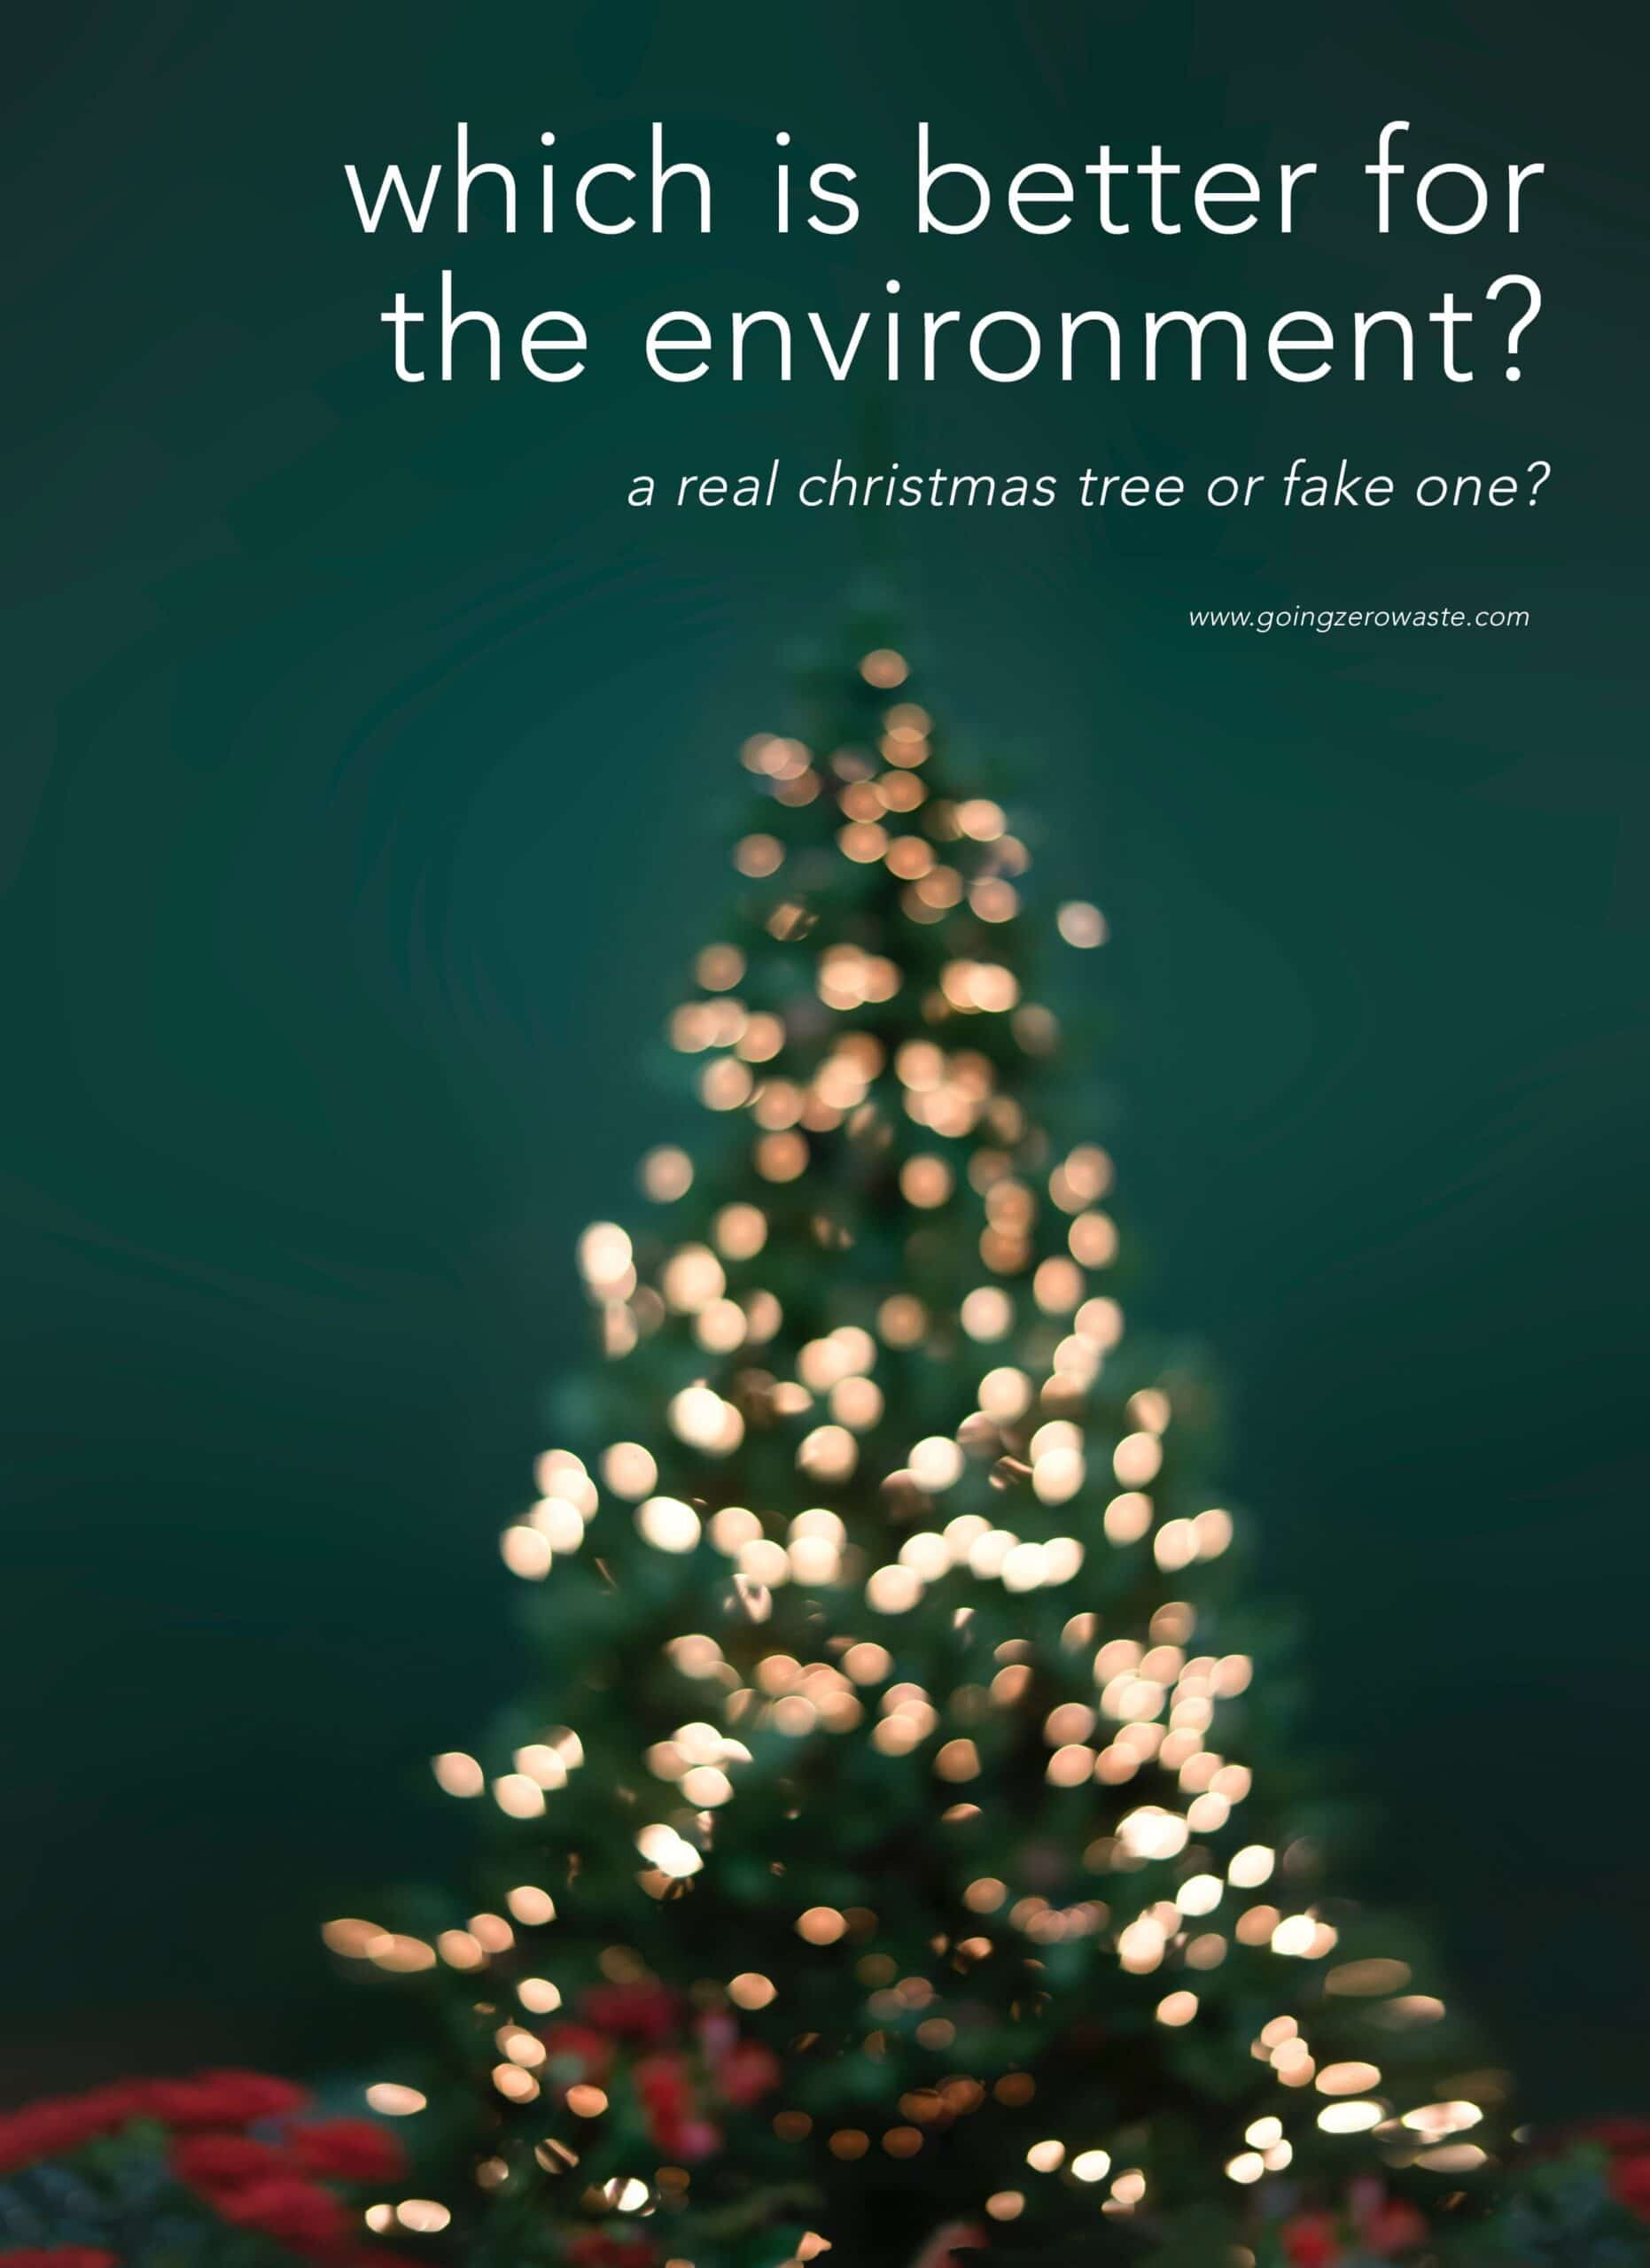 Is A Real Or Fake Christmas Tree Better For The Environment?